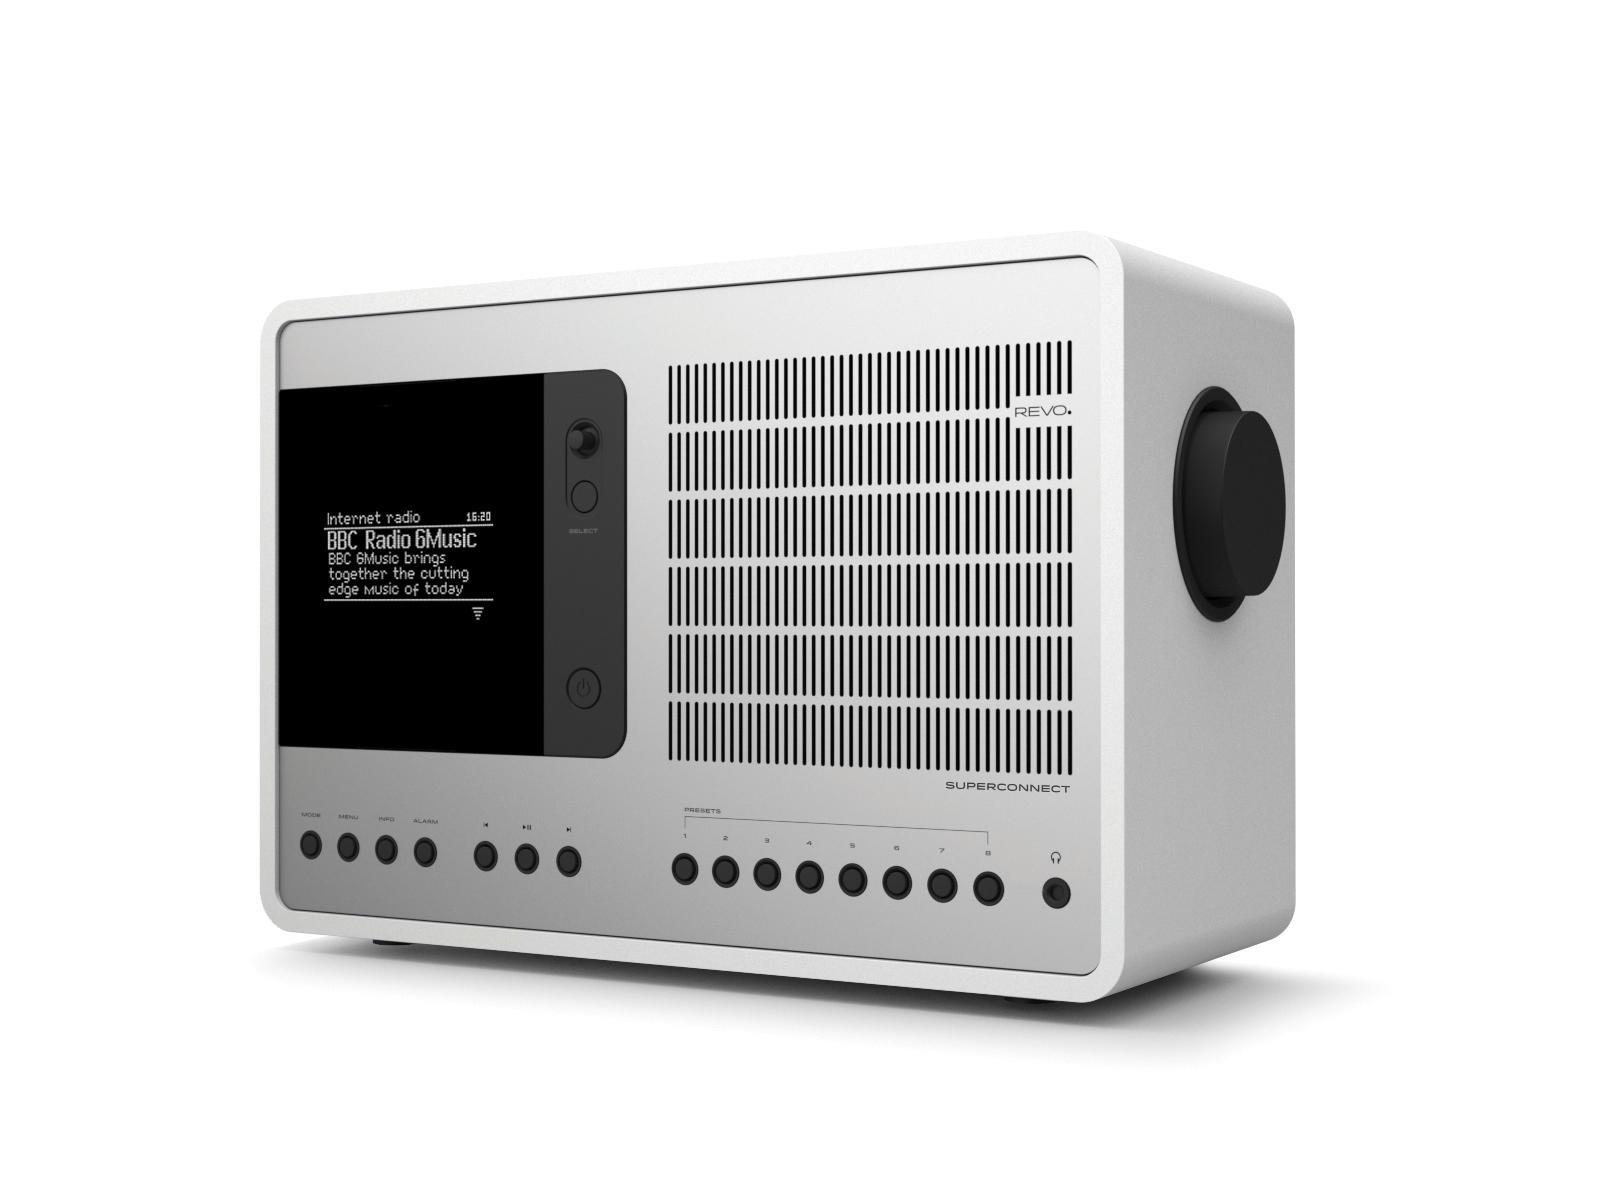 Revo SuperConnect DAB Internet Radio With Spotify - Matt White / Silver